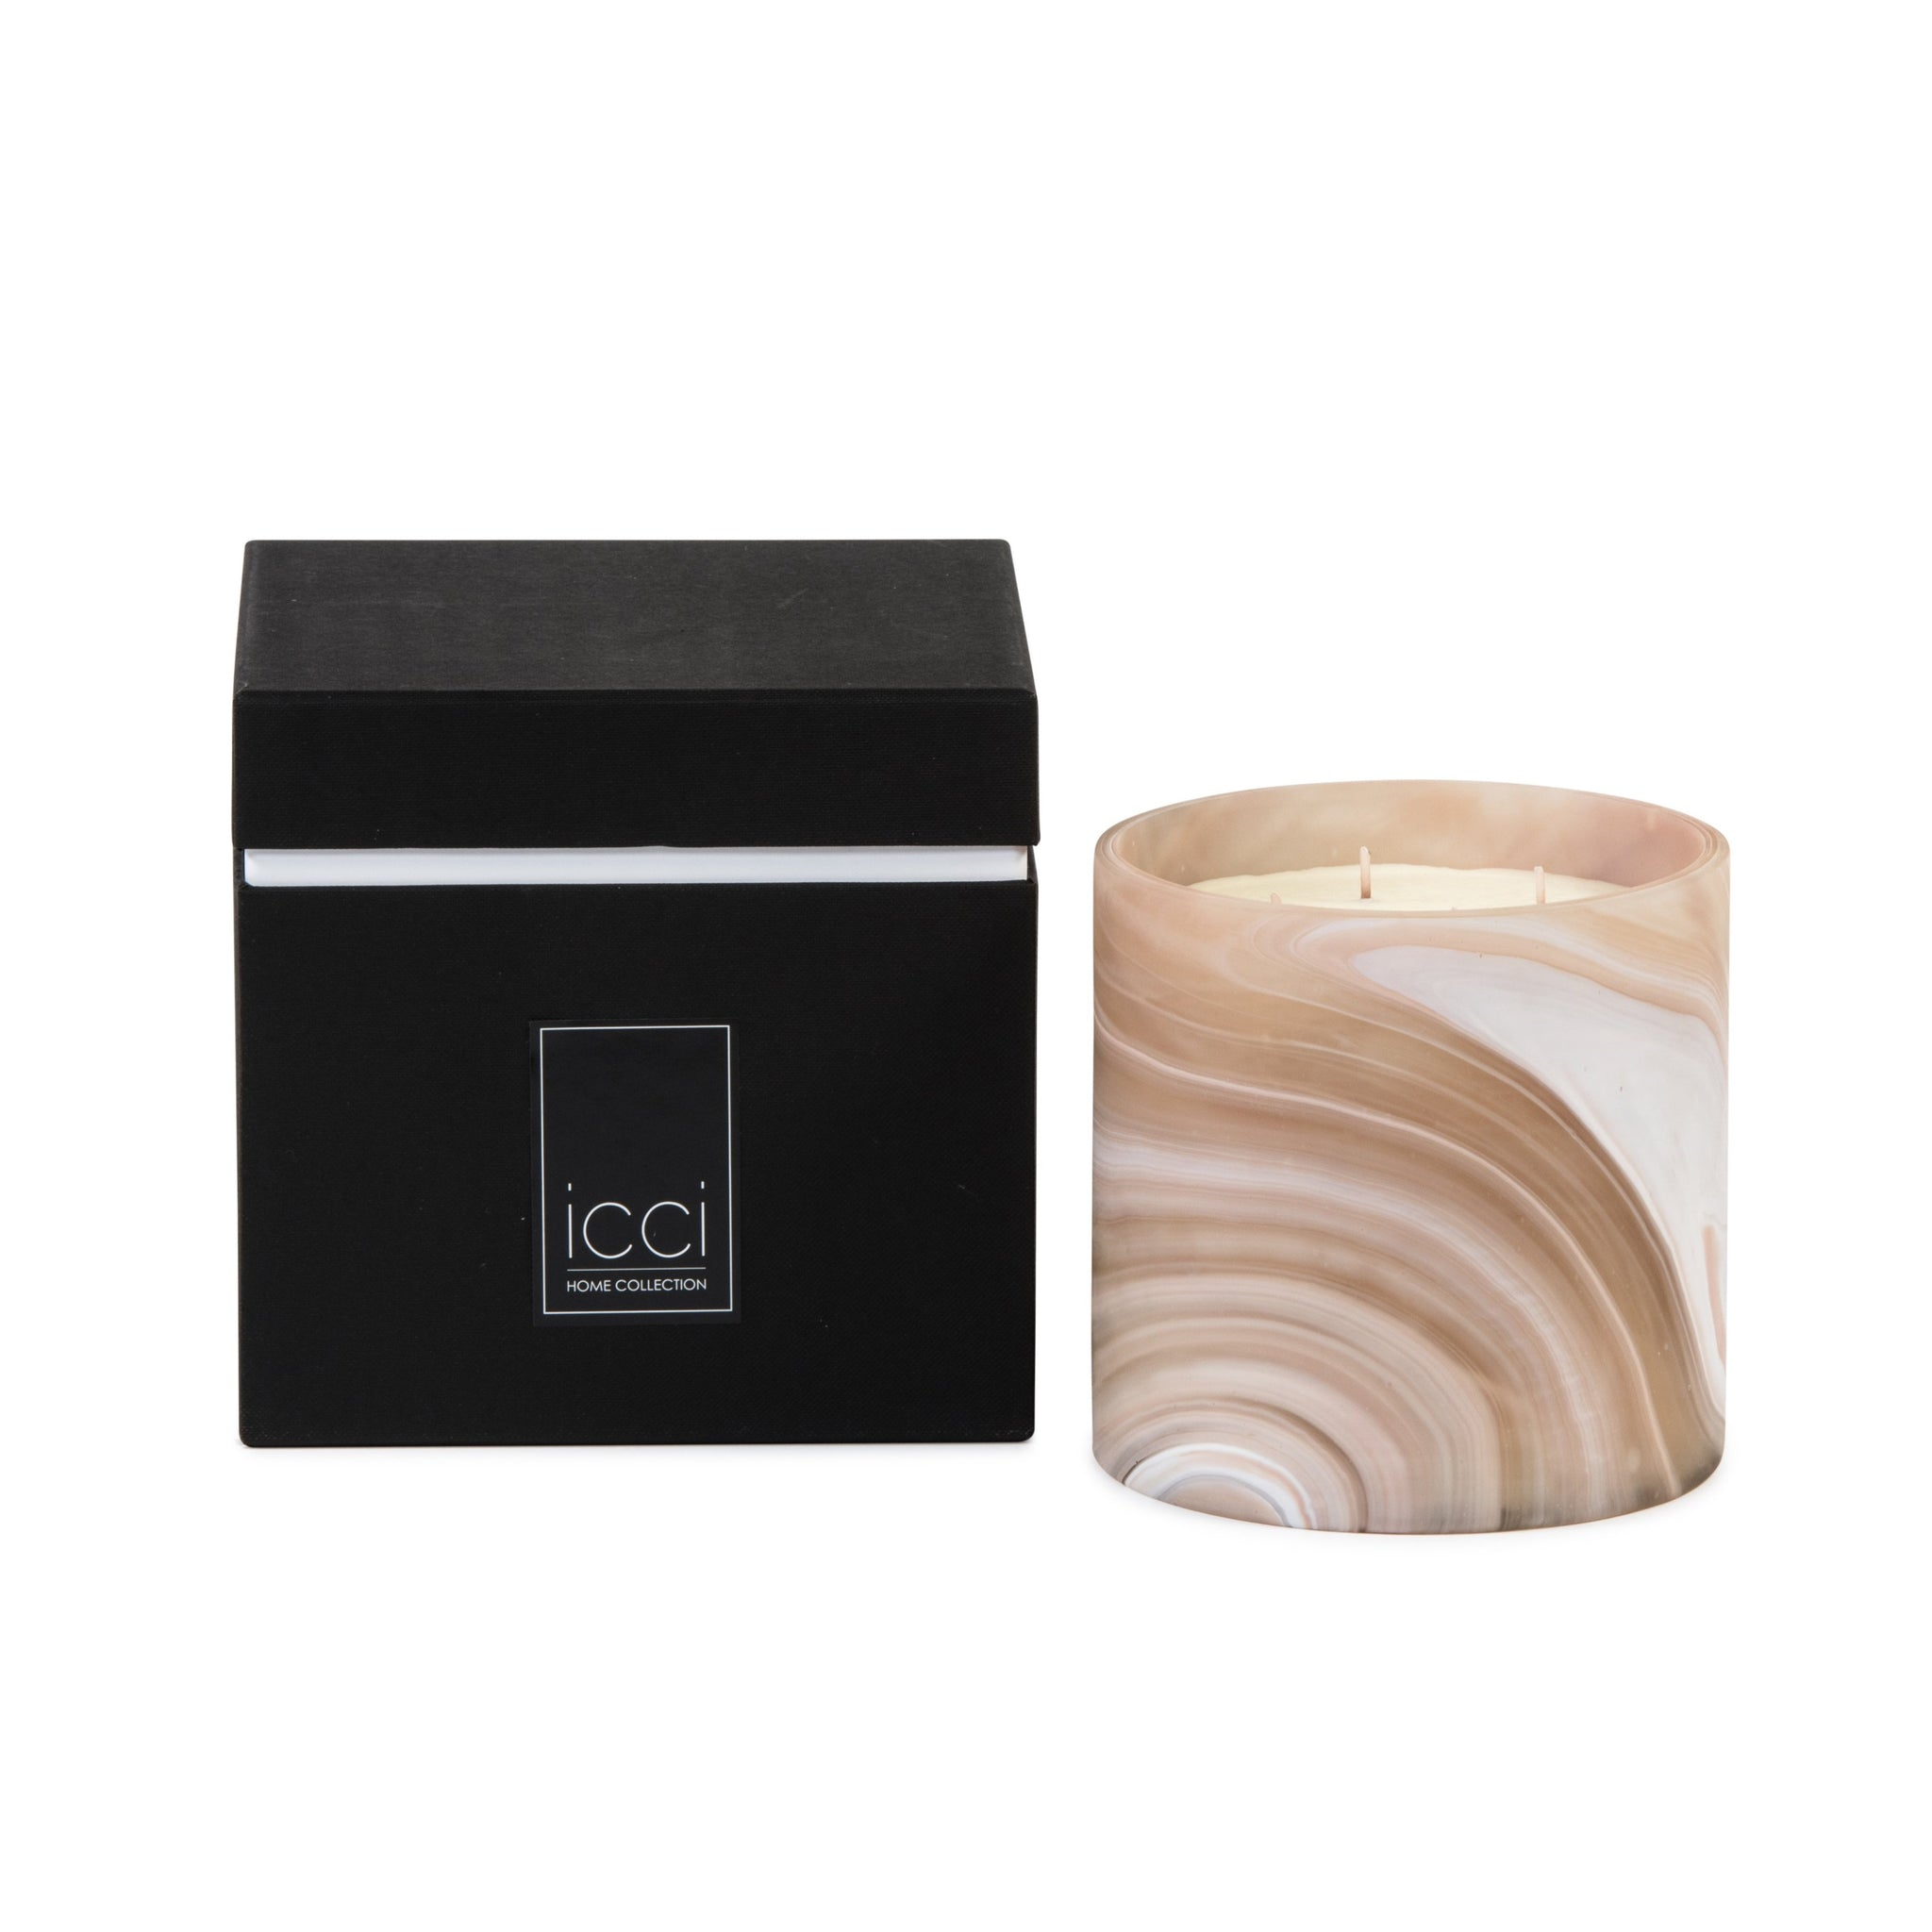 Dekocandle Jaspe Salmon | Large Scented Candle